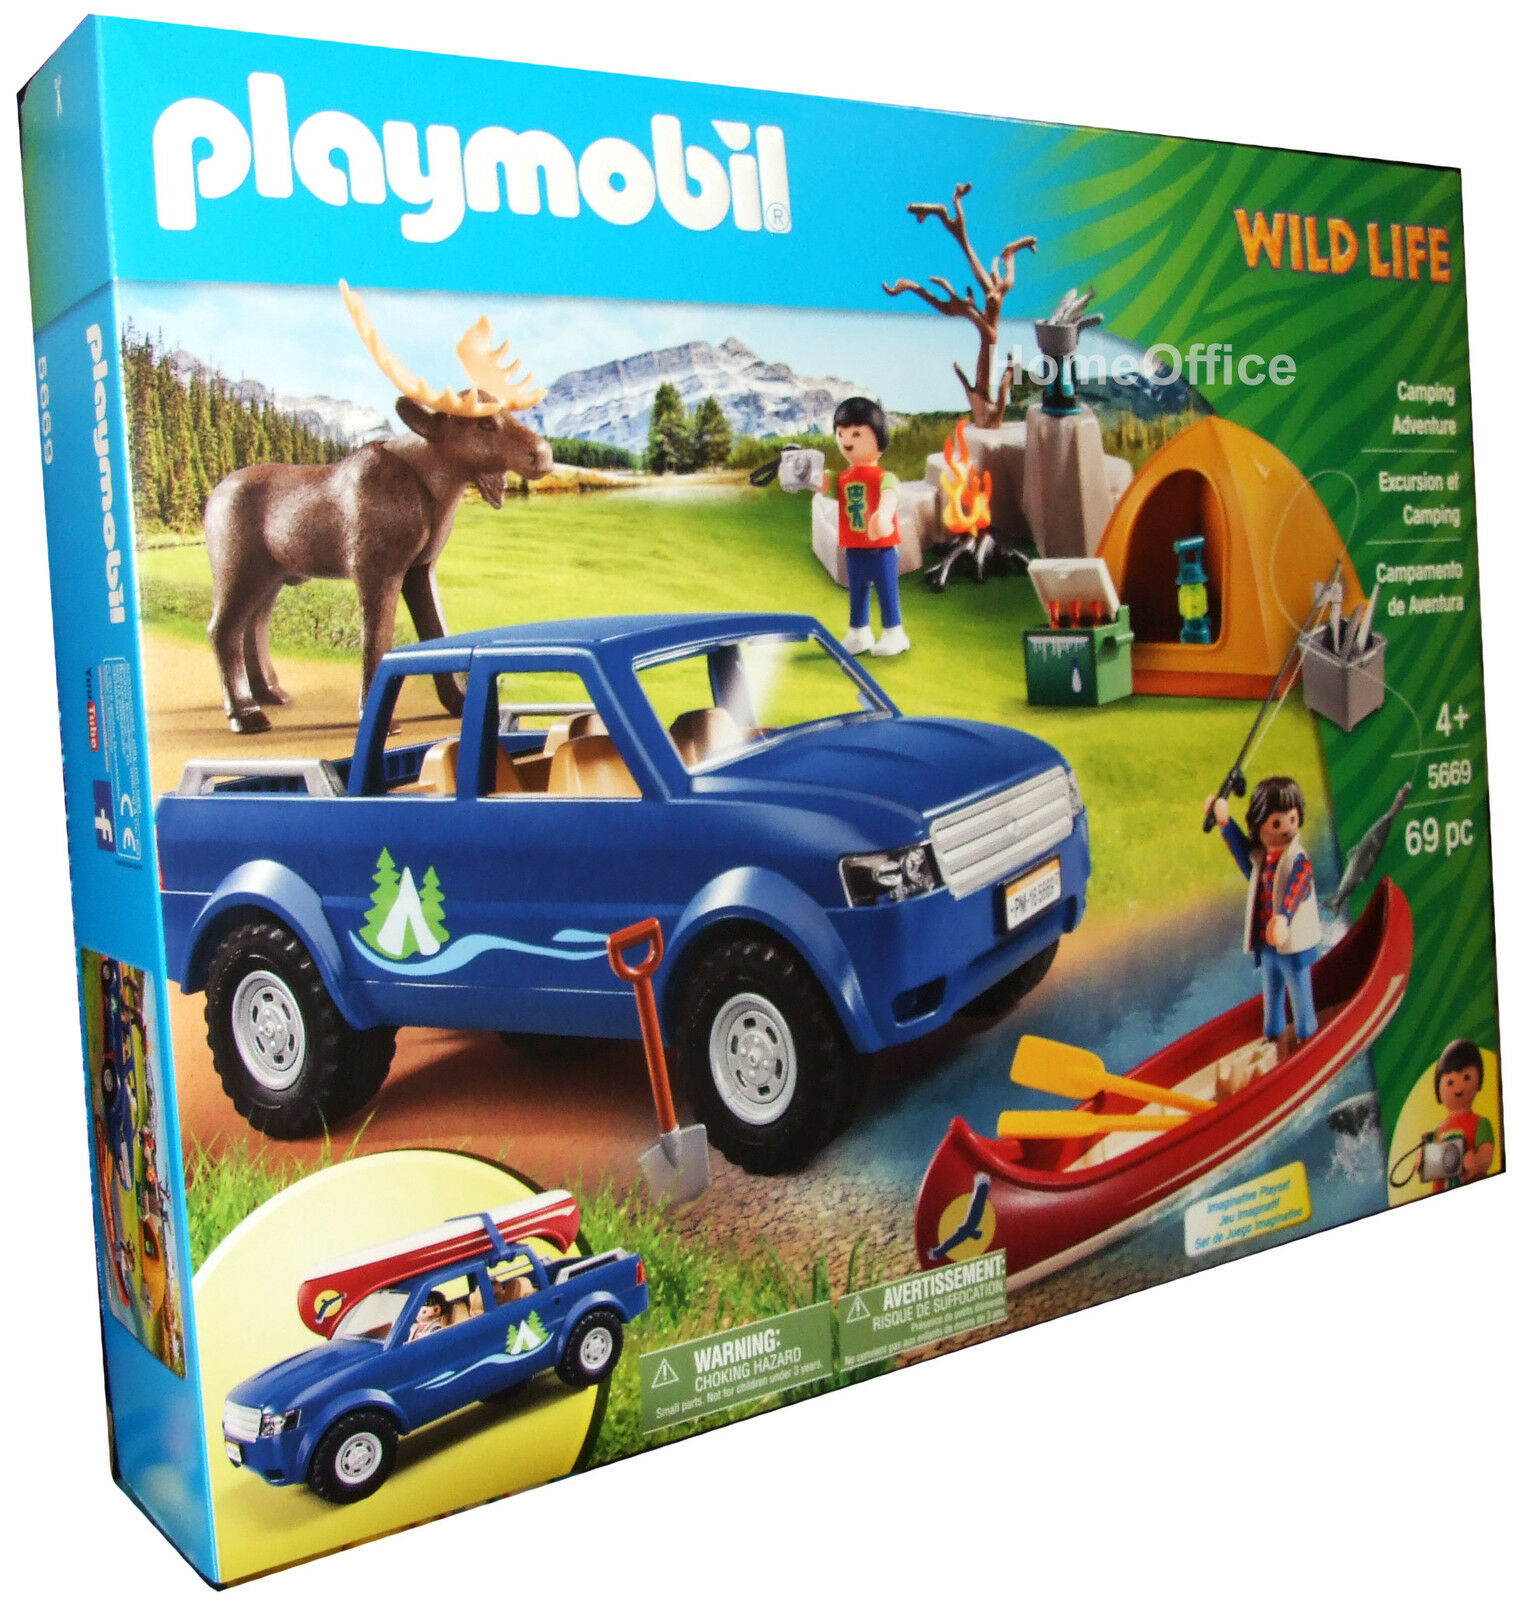 playmobil 5669 wild life camping car canoe accessories child toy new picclick uk. Black Bedroom Furniture Sets. Home Design Ideas